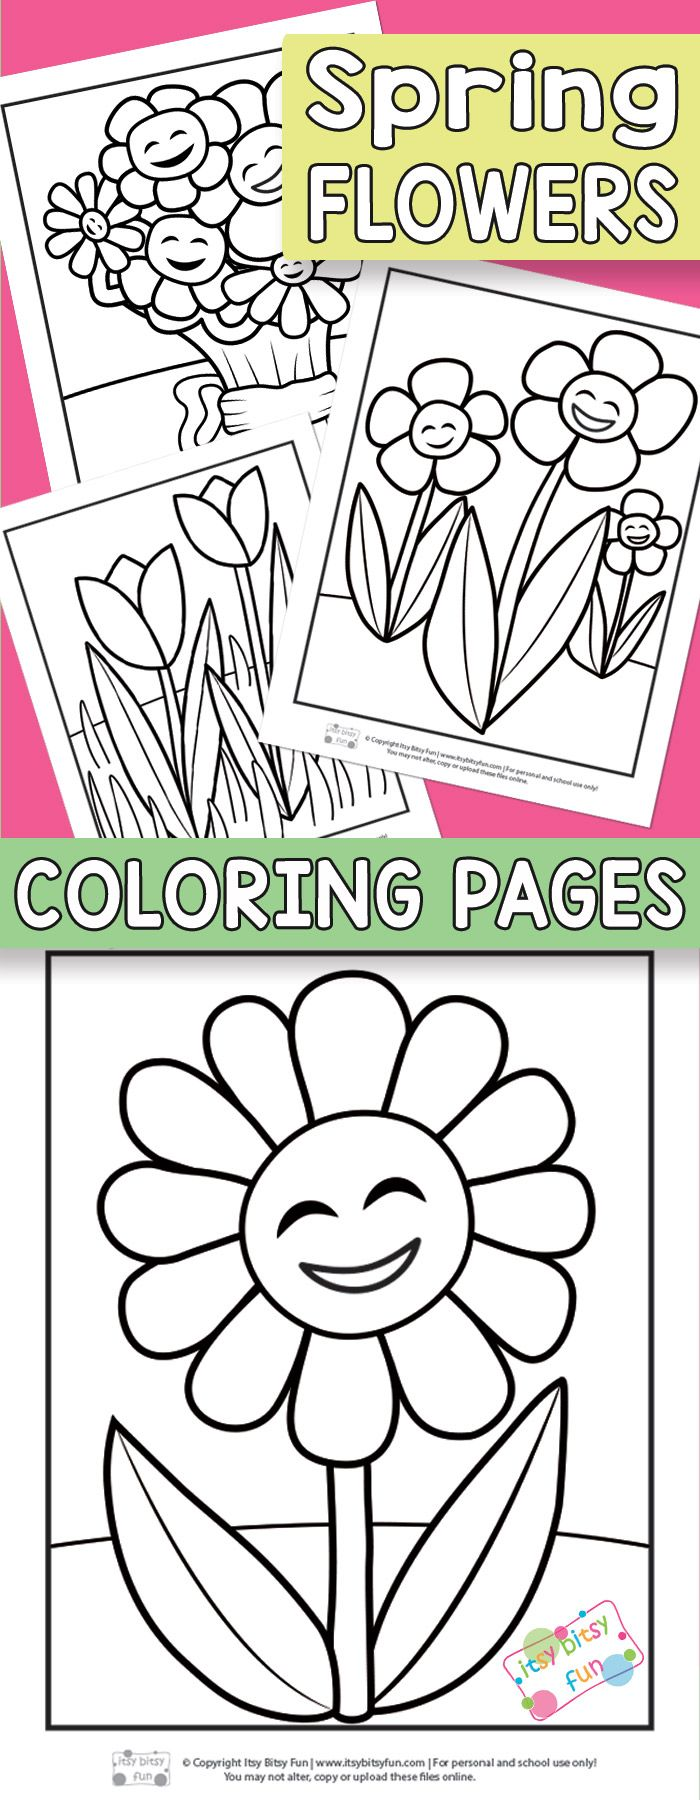 Flower Coloring Pages For Kids Spring Coloring Pages Flower Coloring Pages Preschool Coloring Pages [ 1800 x 700 Pixel ]